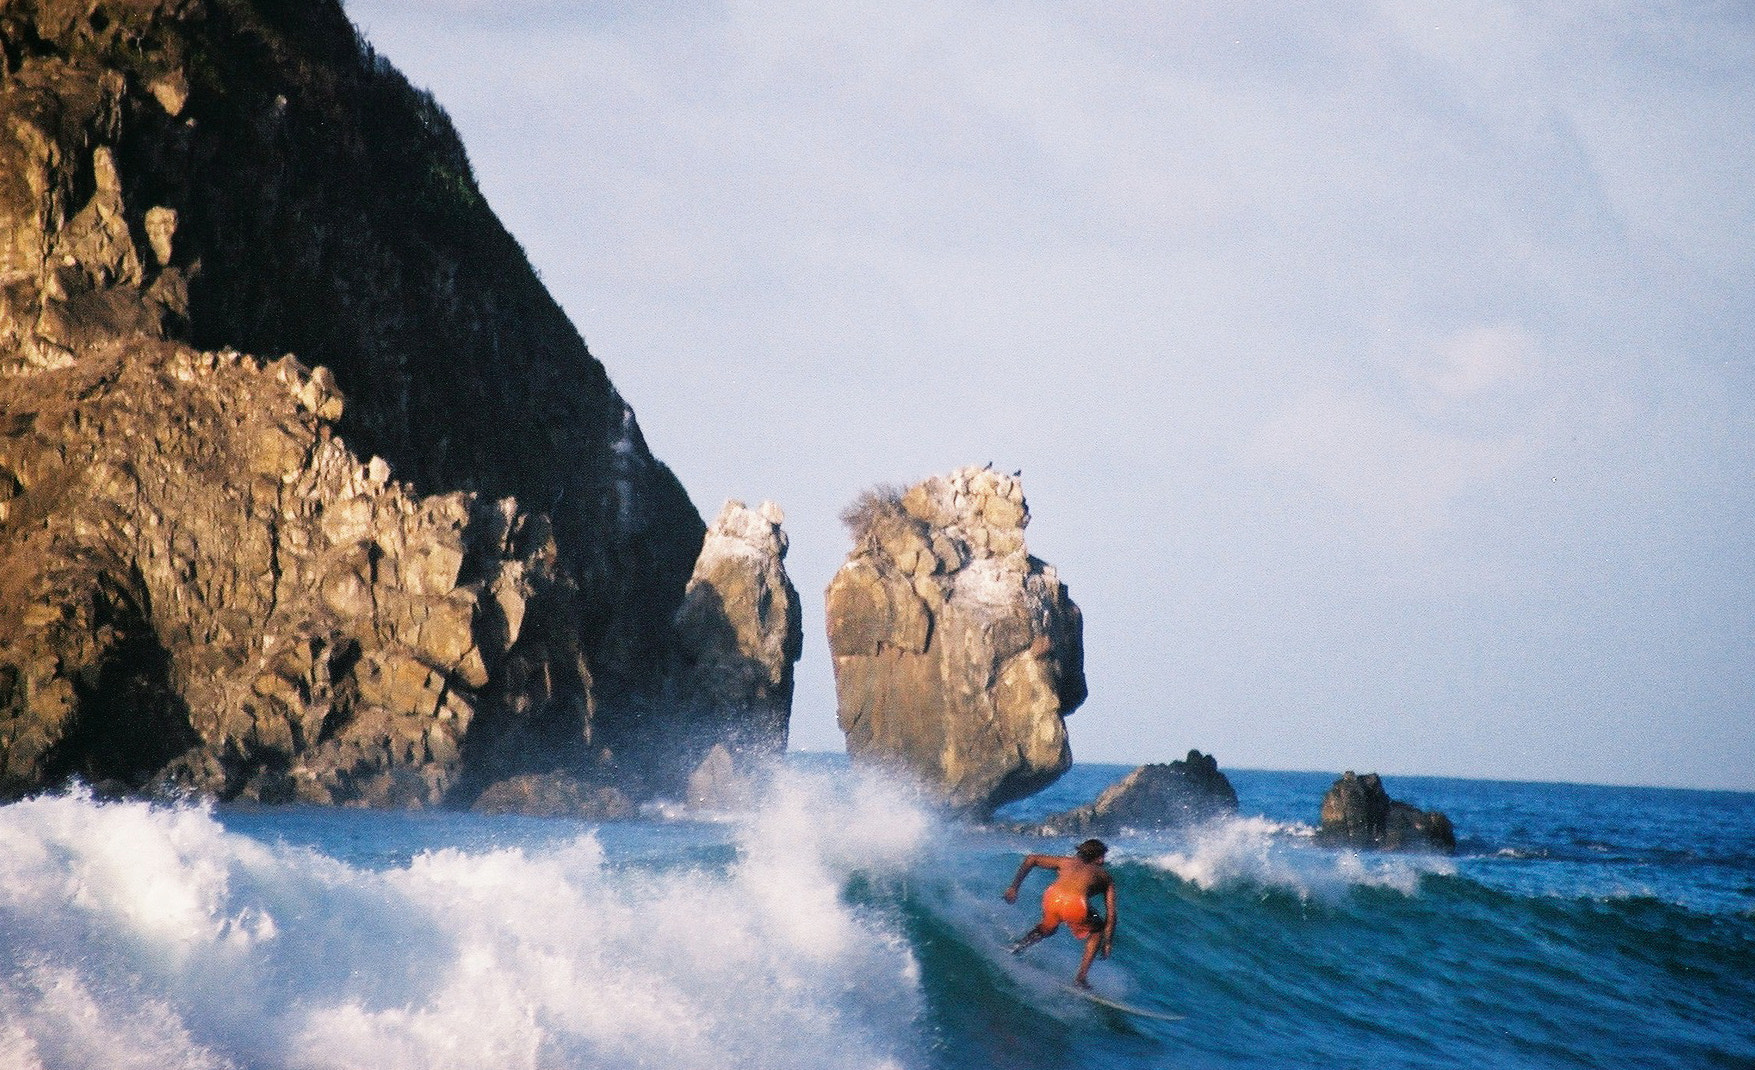 Photograph Surfer in Conceicao by Michel Eberhardt on 500px